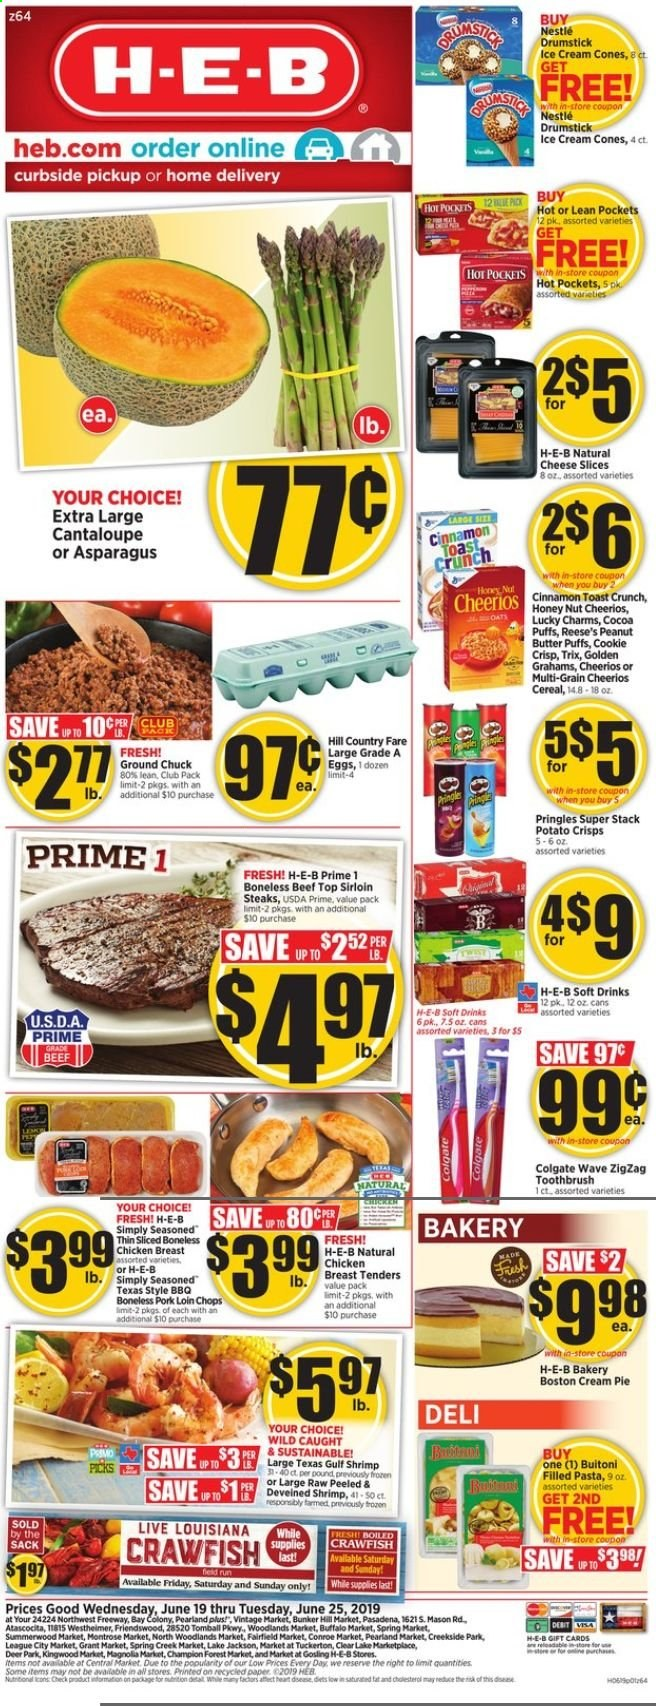 H-E-B Flyer  - 06.19.2019 - 06.25.2019. Page 1.